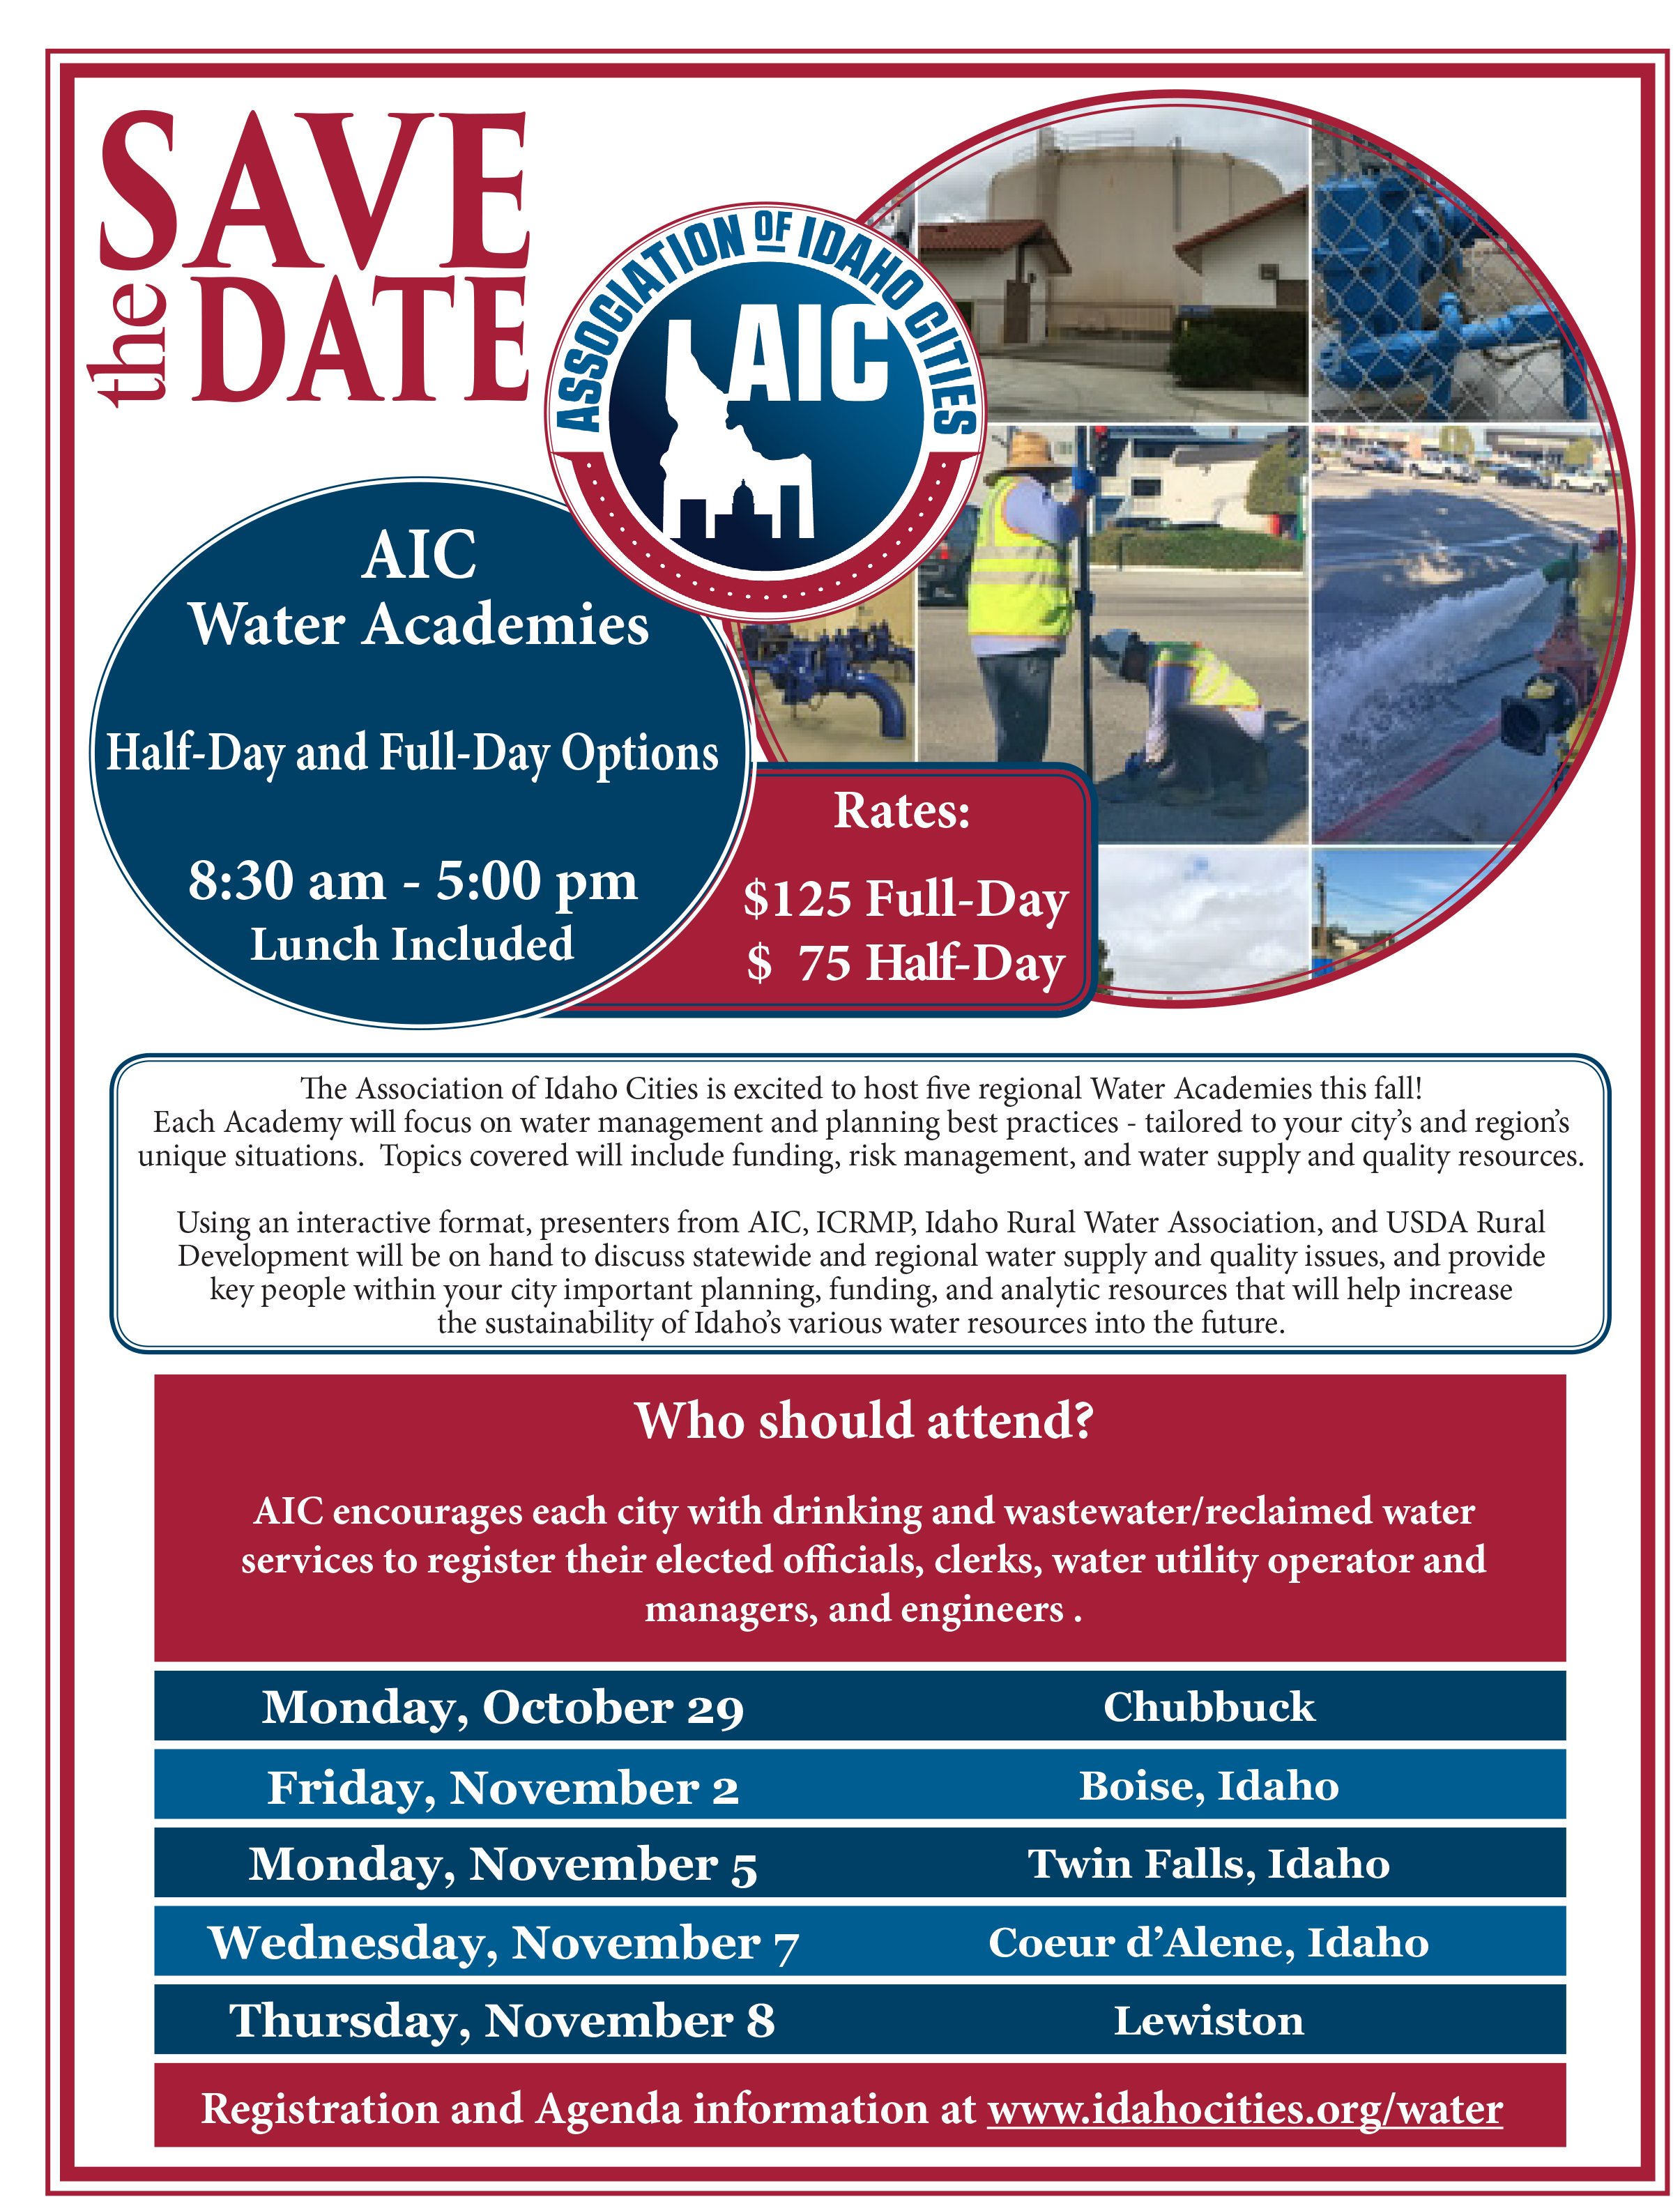 aic_water_academy_flyer.jpg